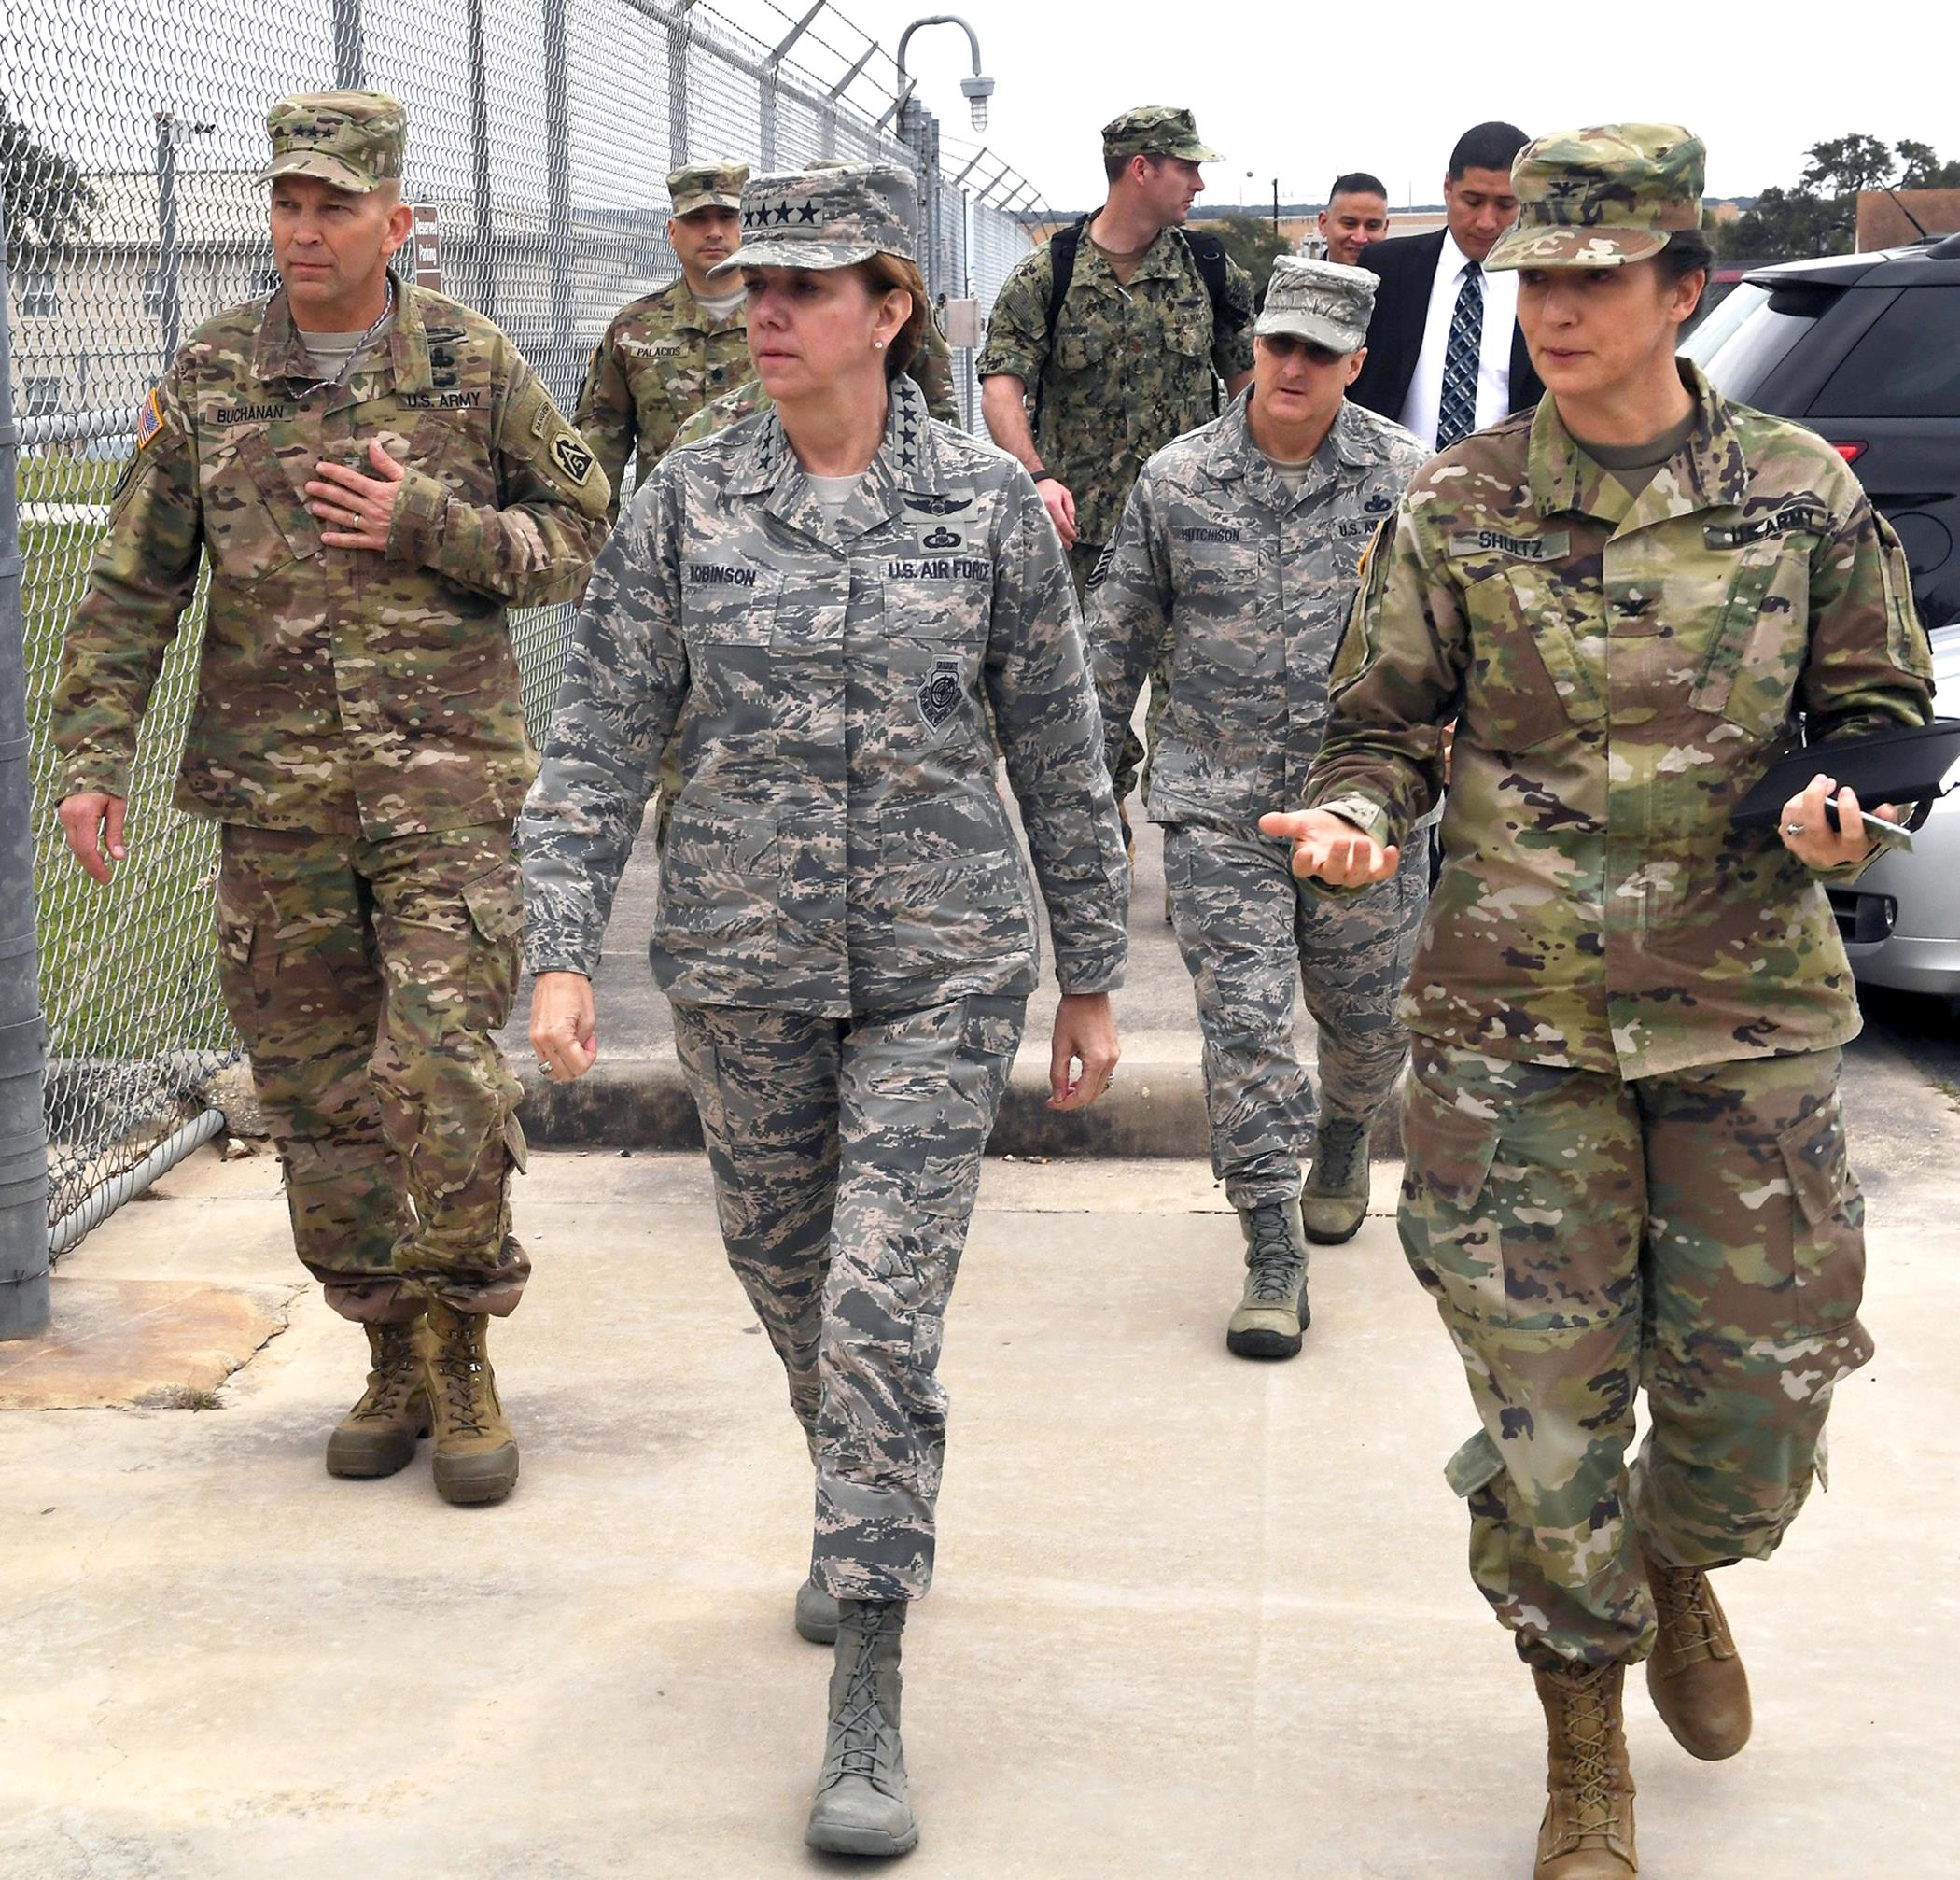 Army North intelligence growing in South Texas foothills ...